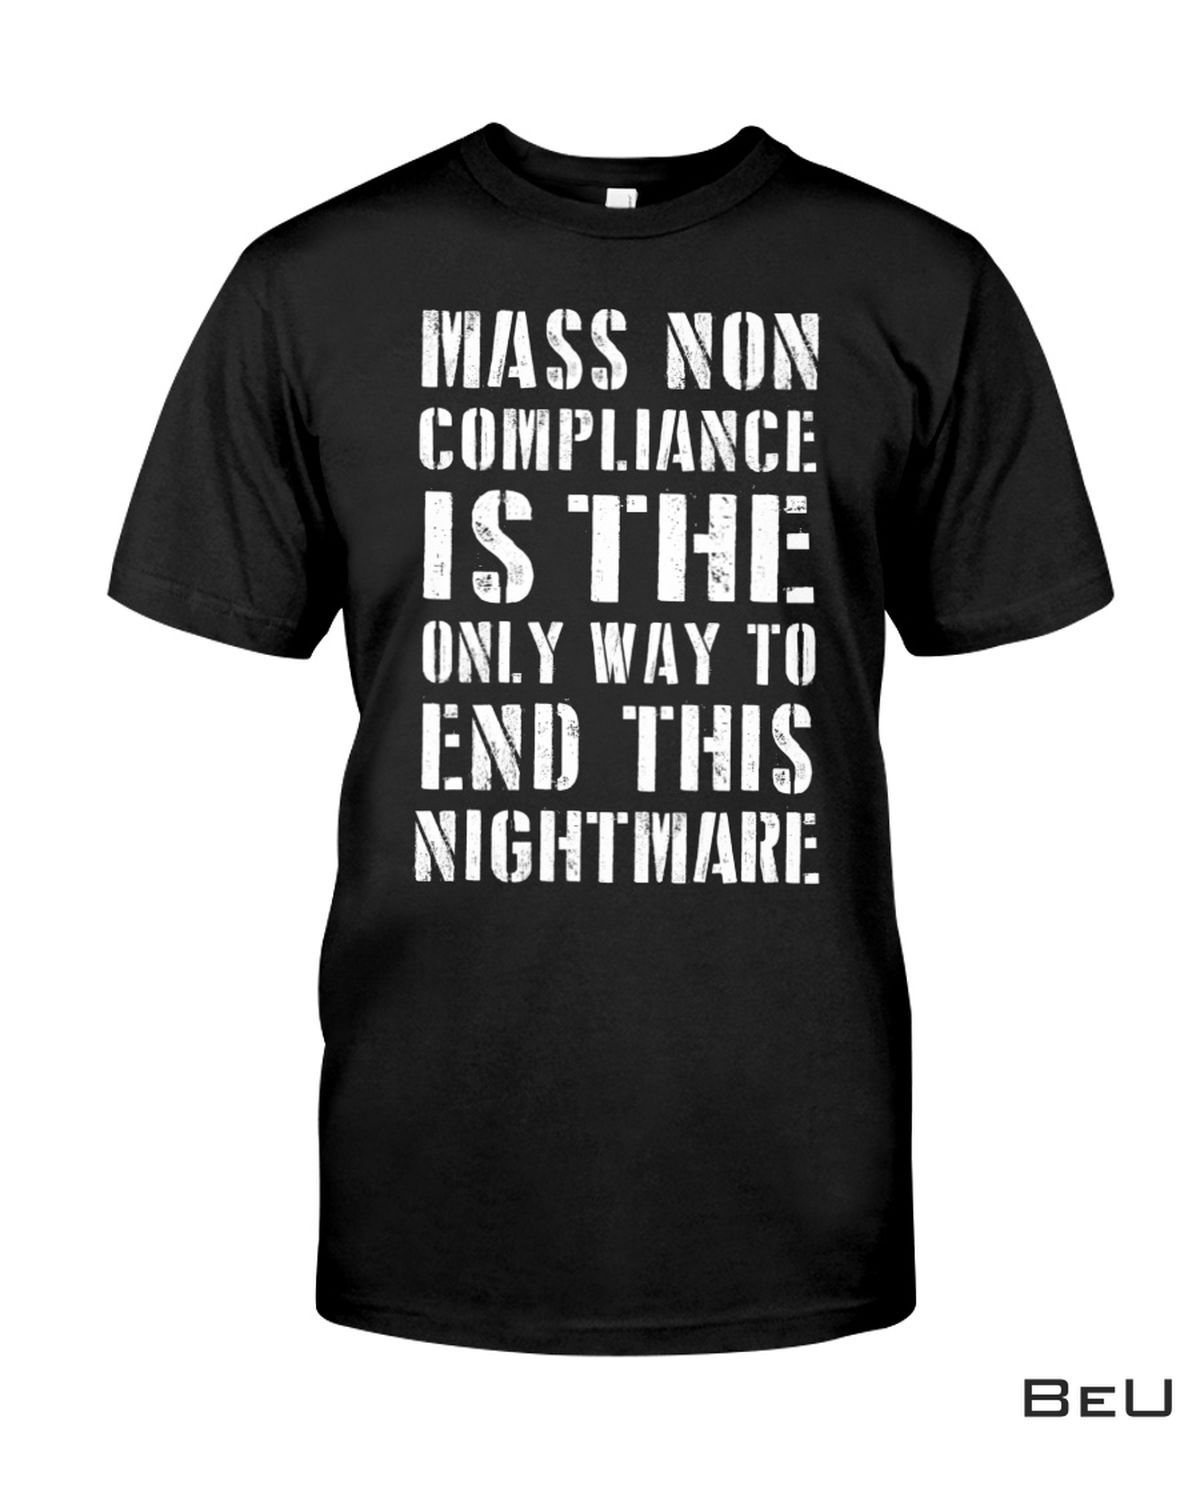 Great artwork! Mass Non Compliance Is The Only Way To End This Nightmare Shirt, hoodie, tank top